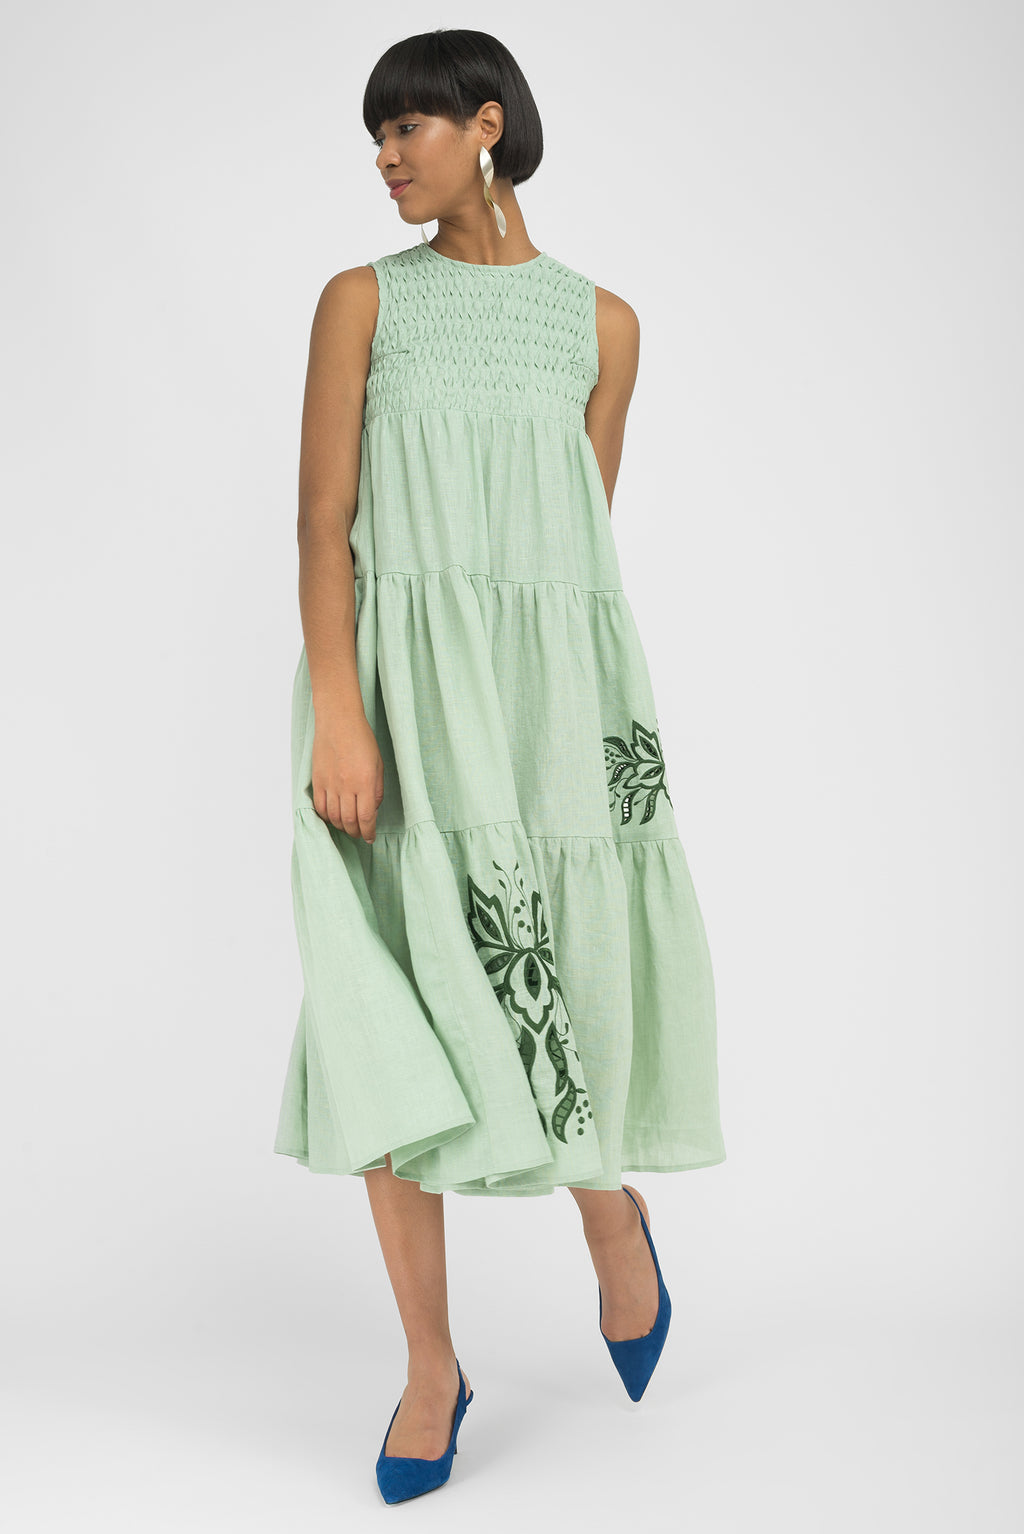 FANM MON SIMENA Mint Green Linen Midi Dress